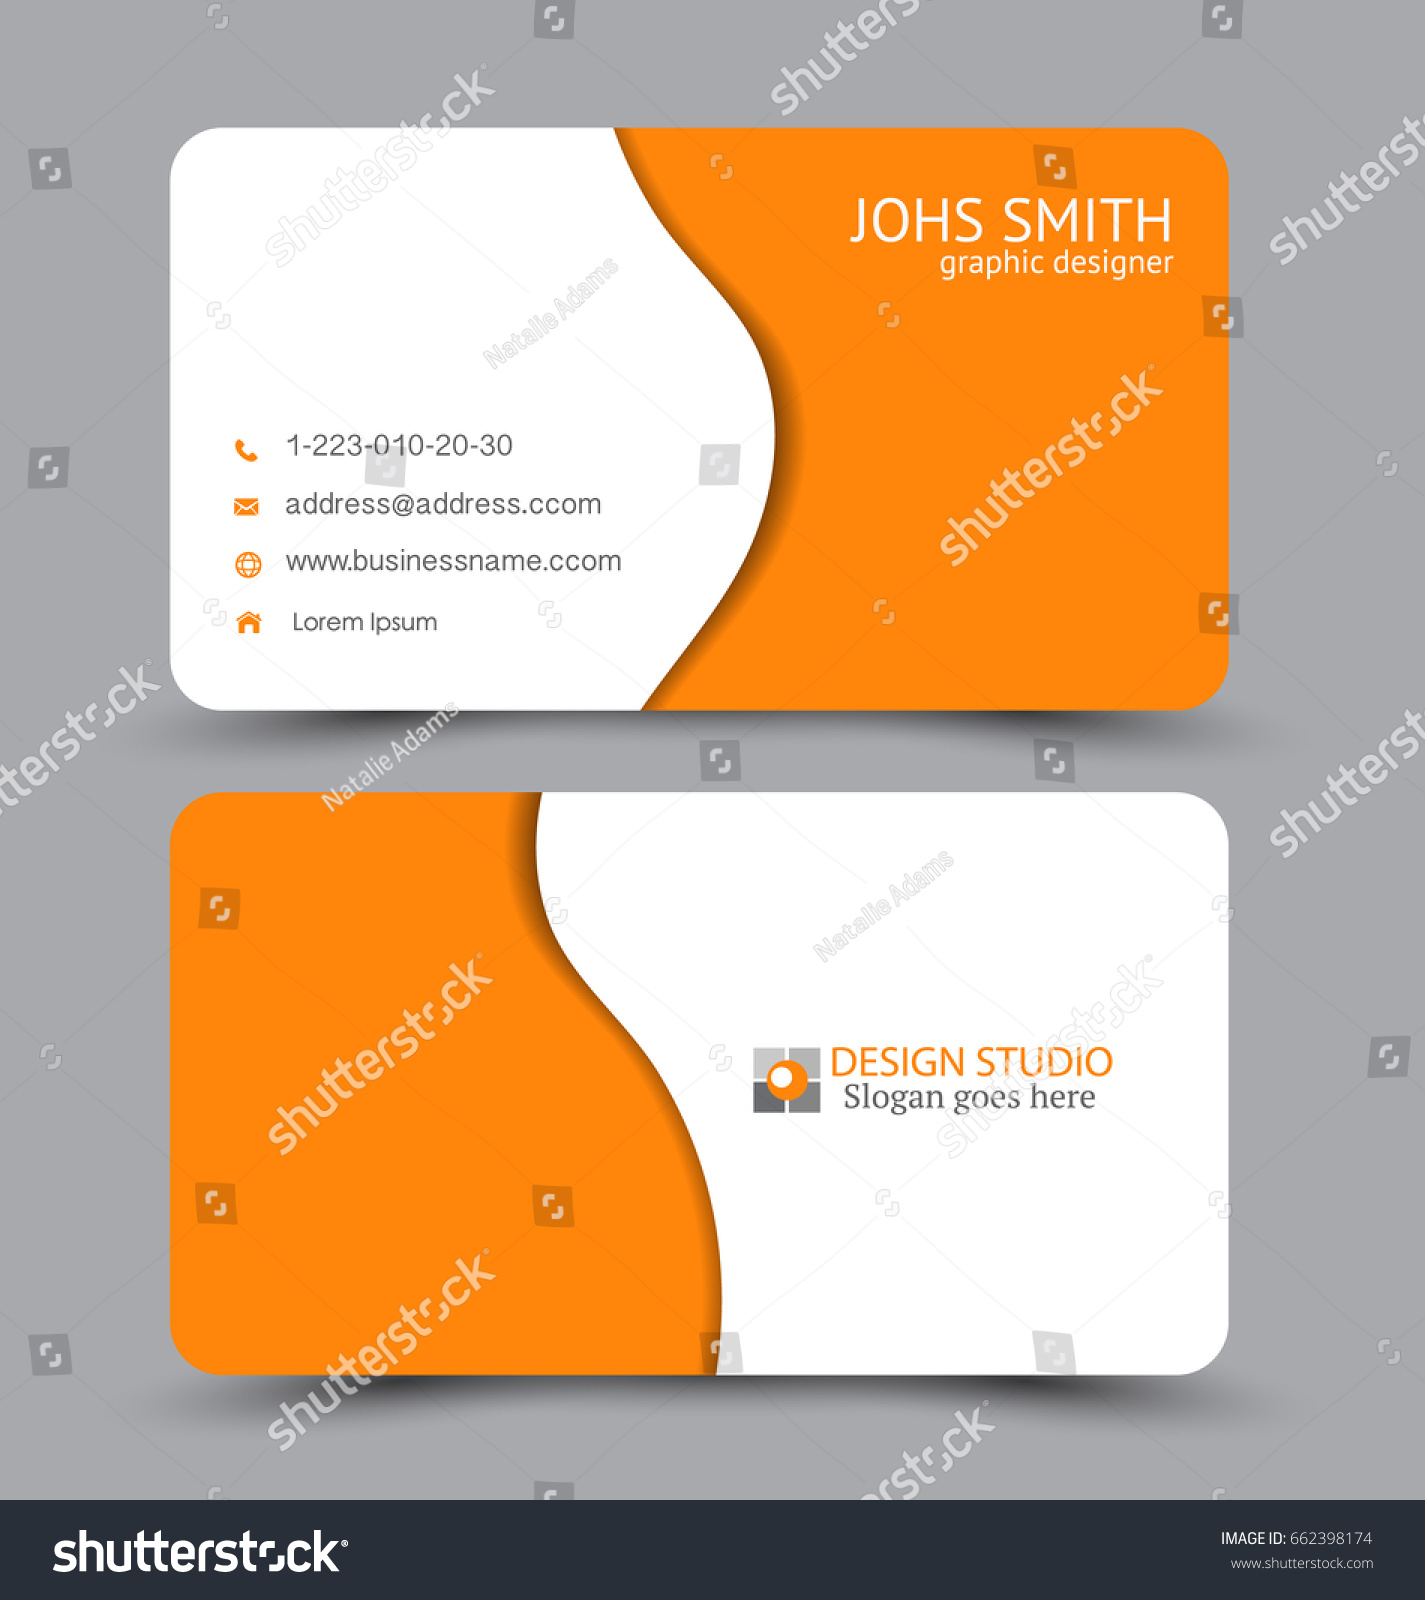 Business Card Design Set Template Company Stock Vector 662398174 ...